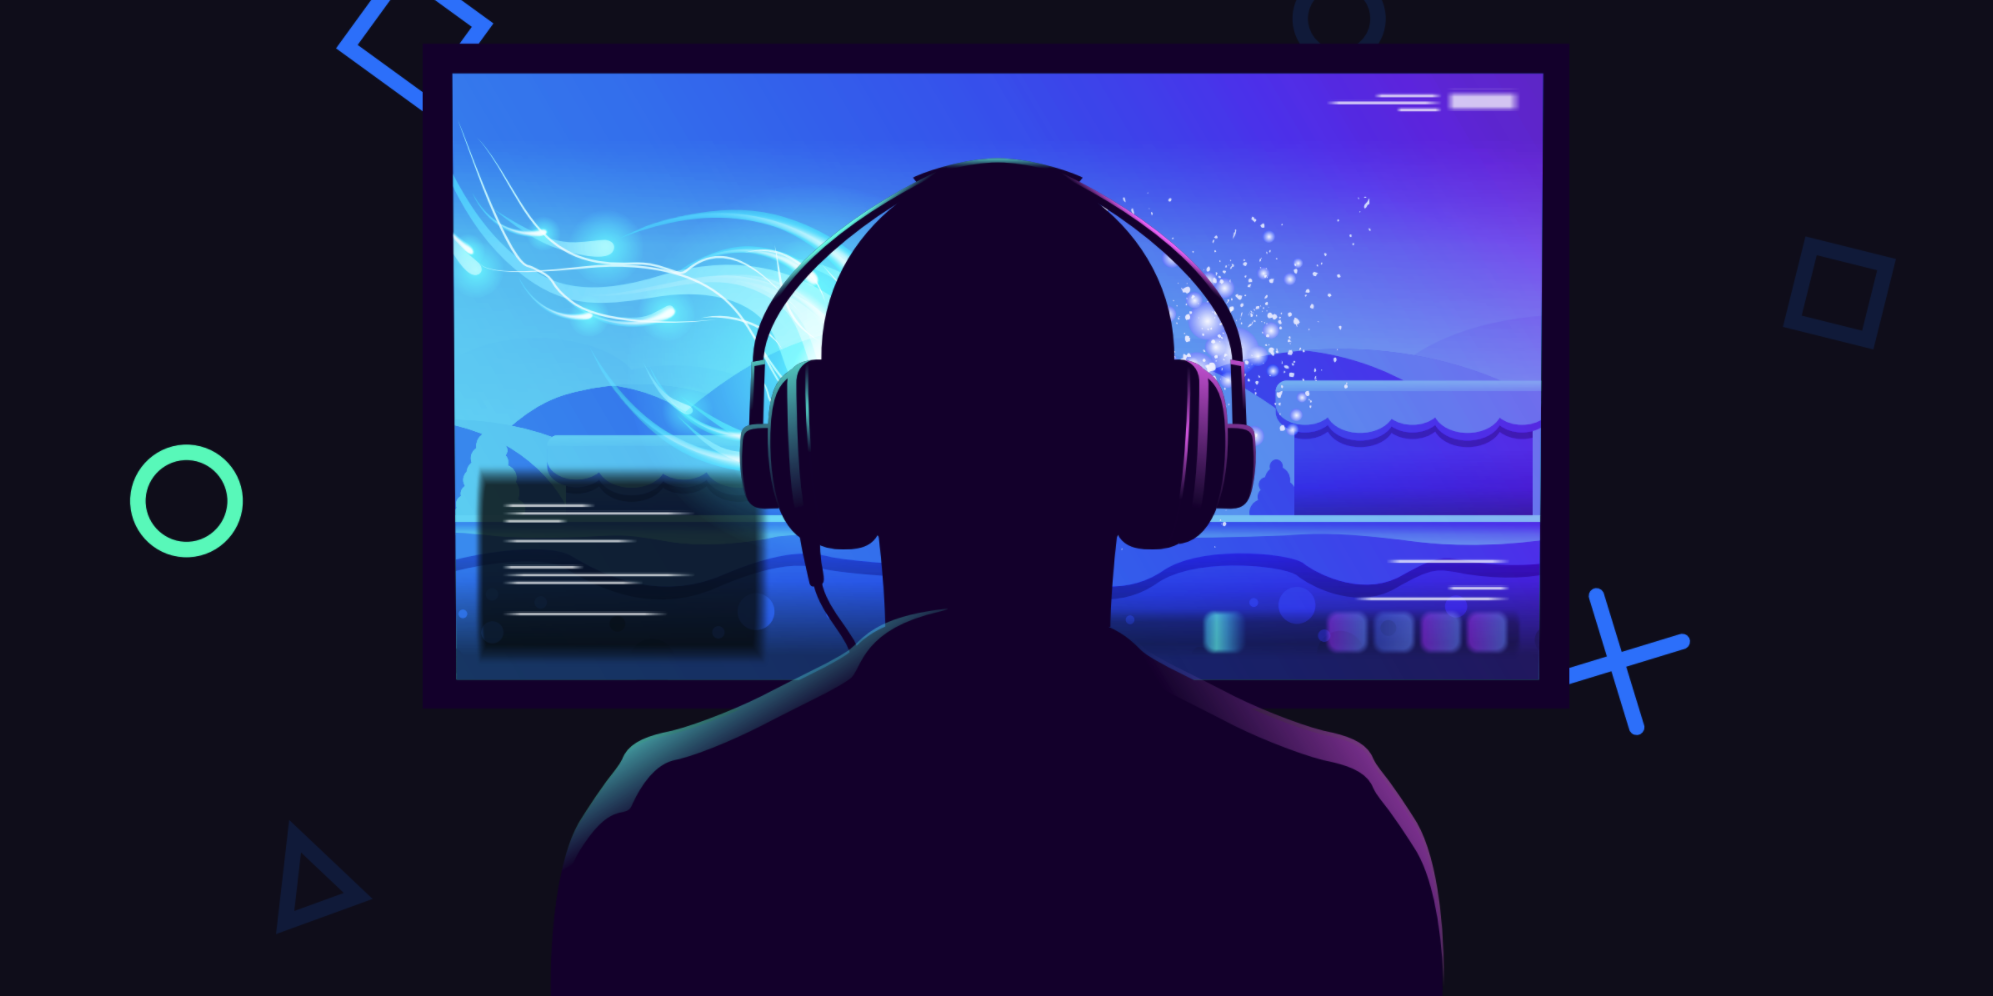 More remote teams, working across multiple time zones, delivering titles for streaming platforms – how devs see the games of this new decade